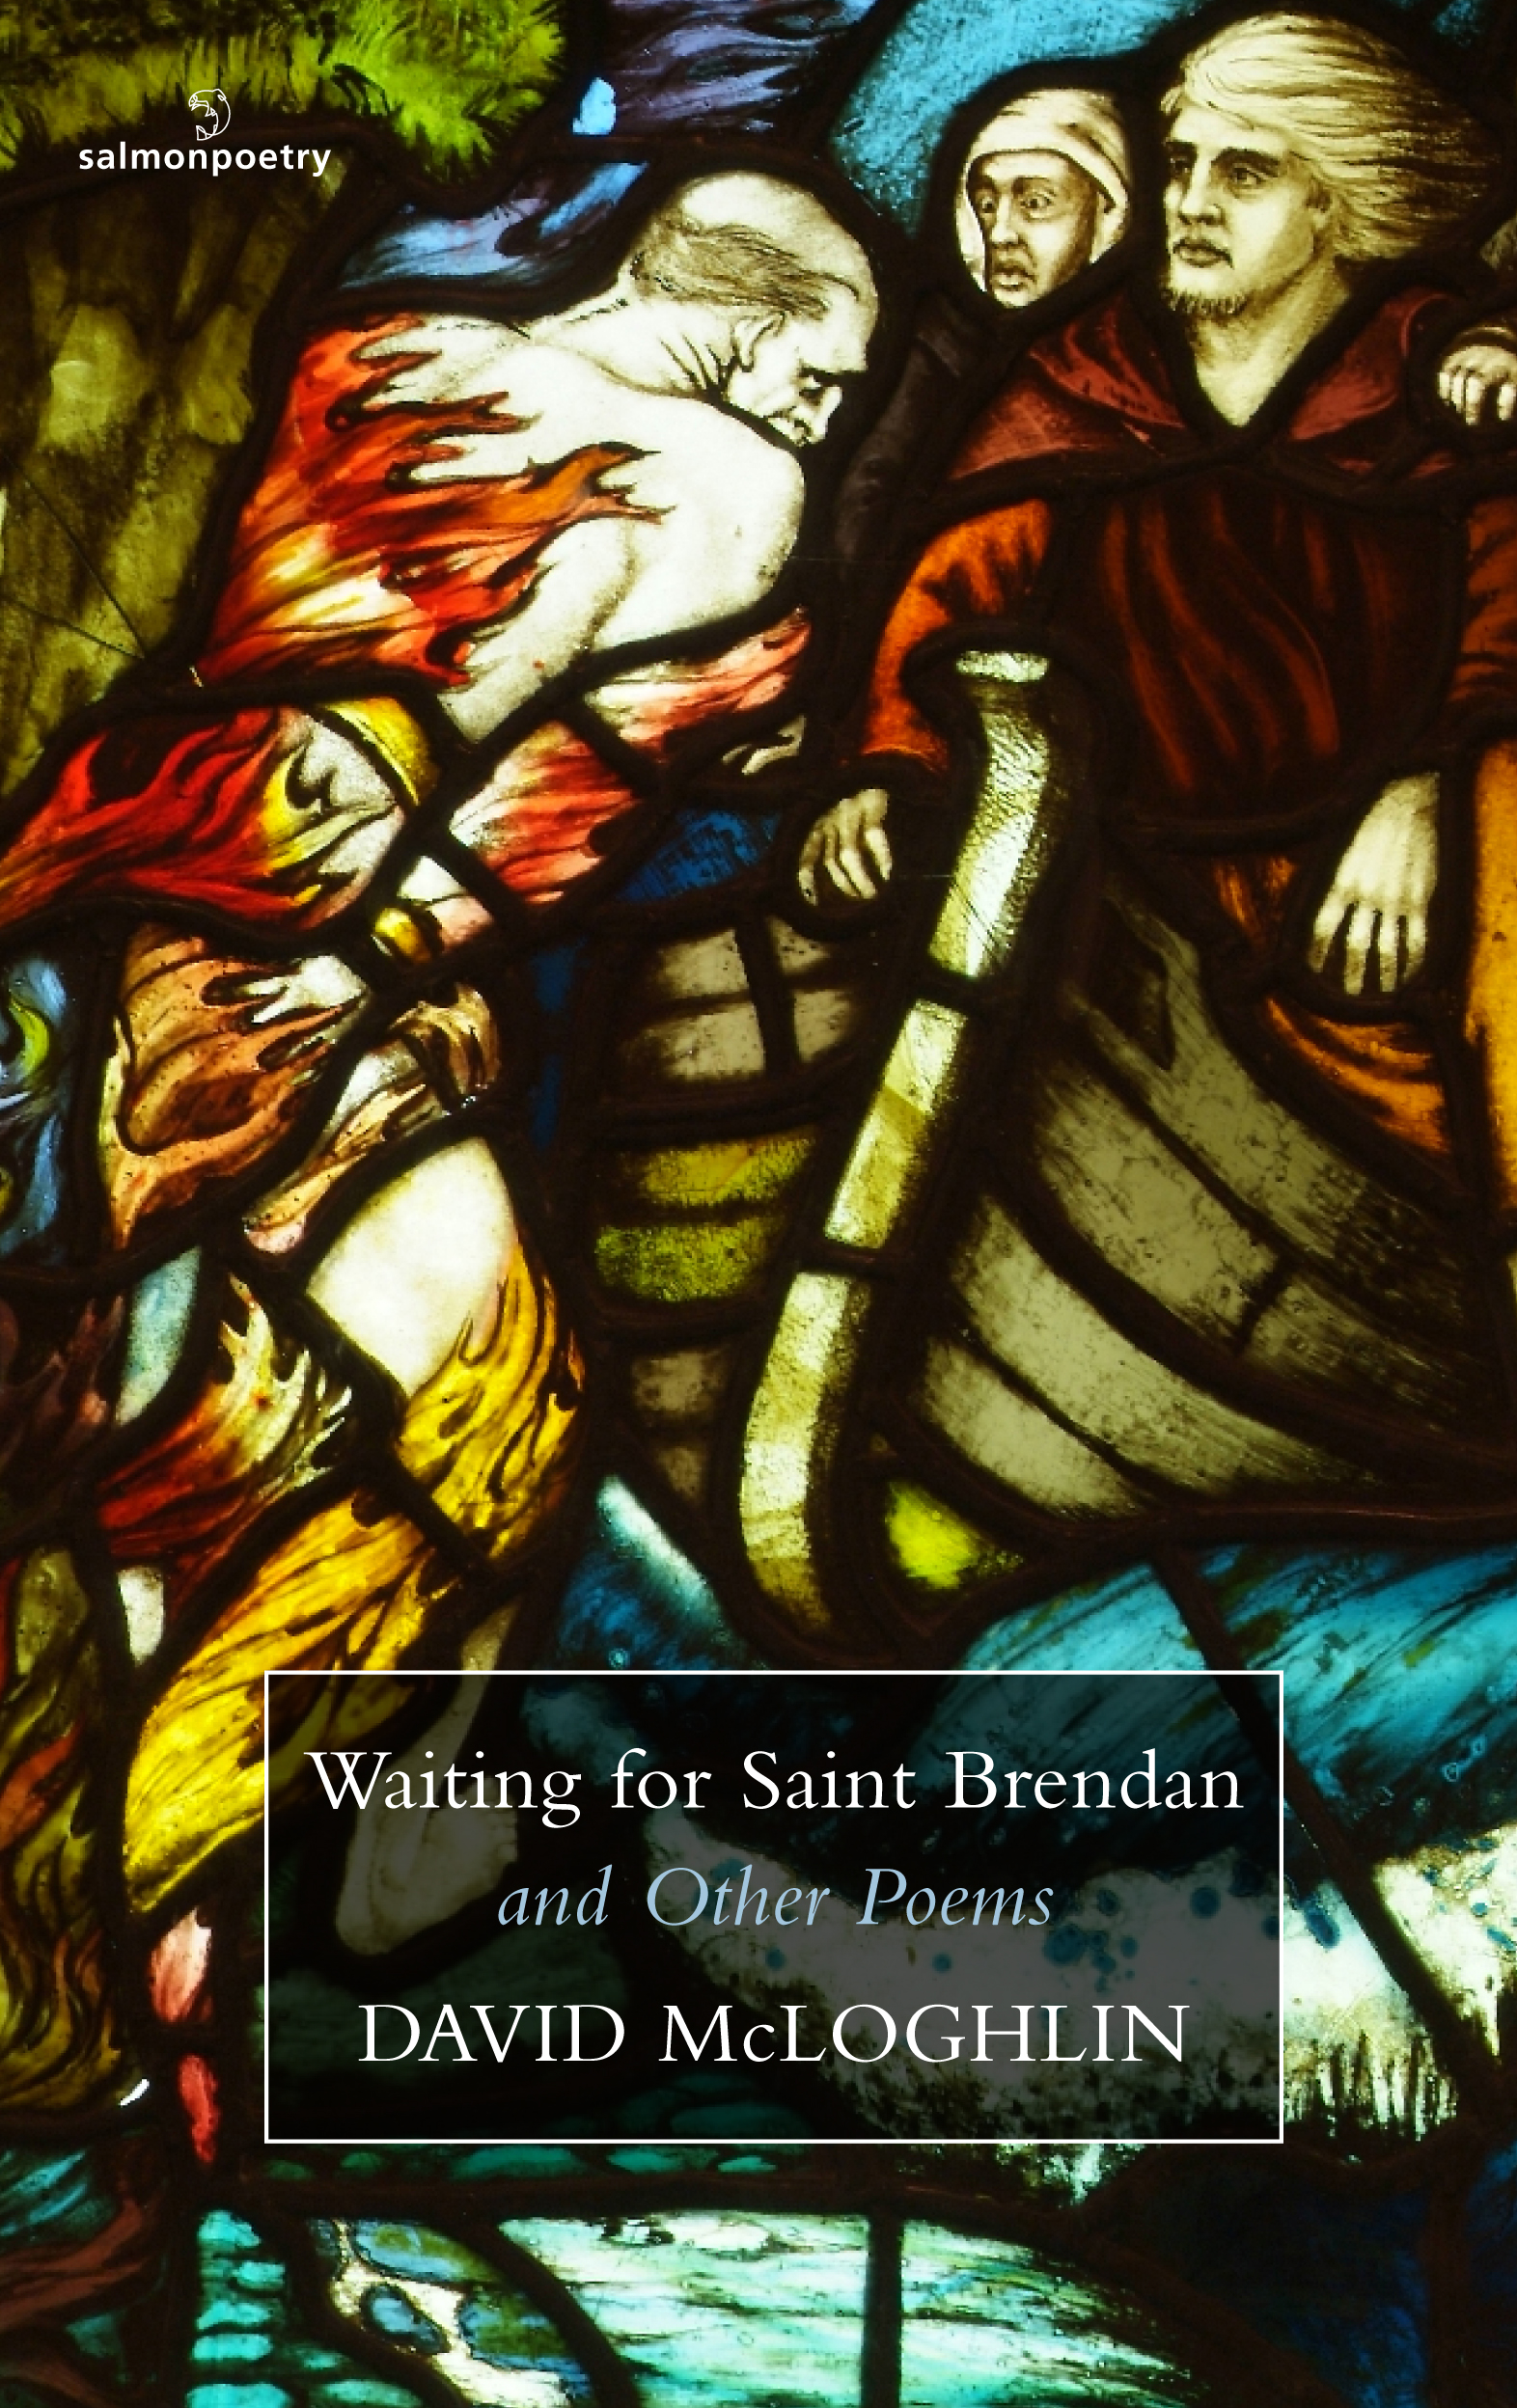 Waiting for Saint Brendan.jpg